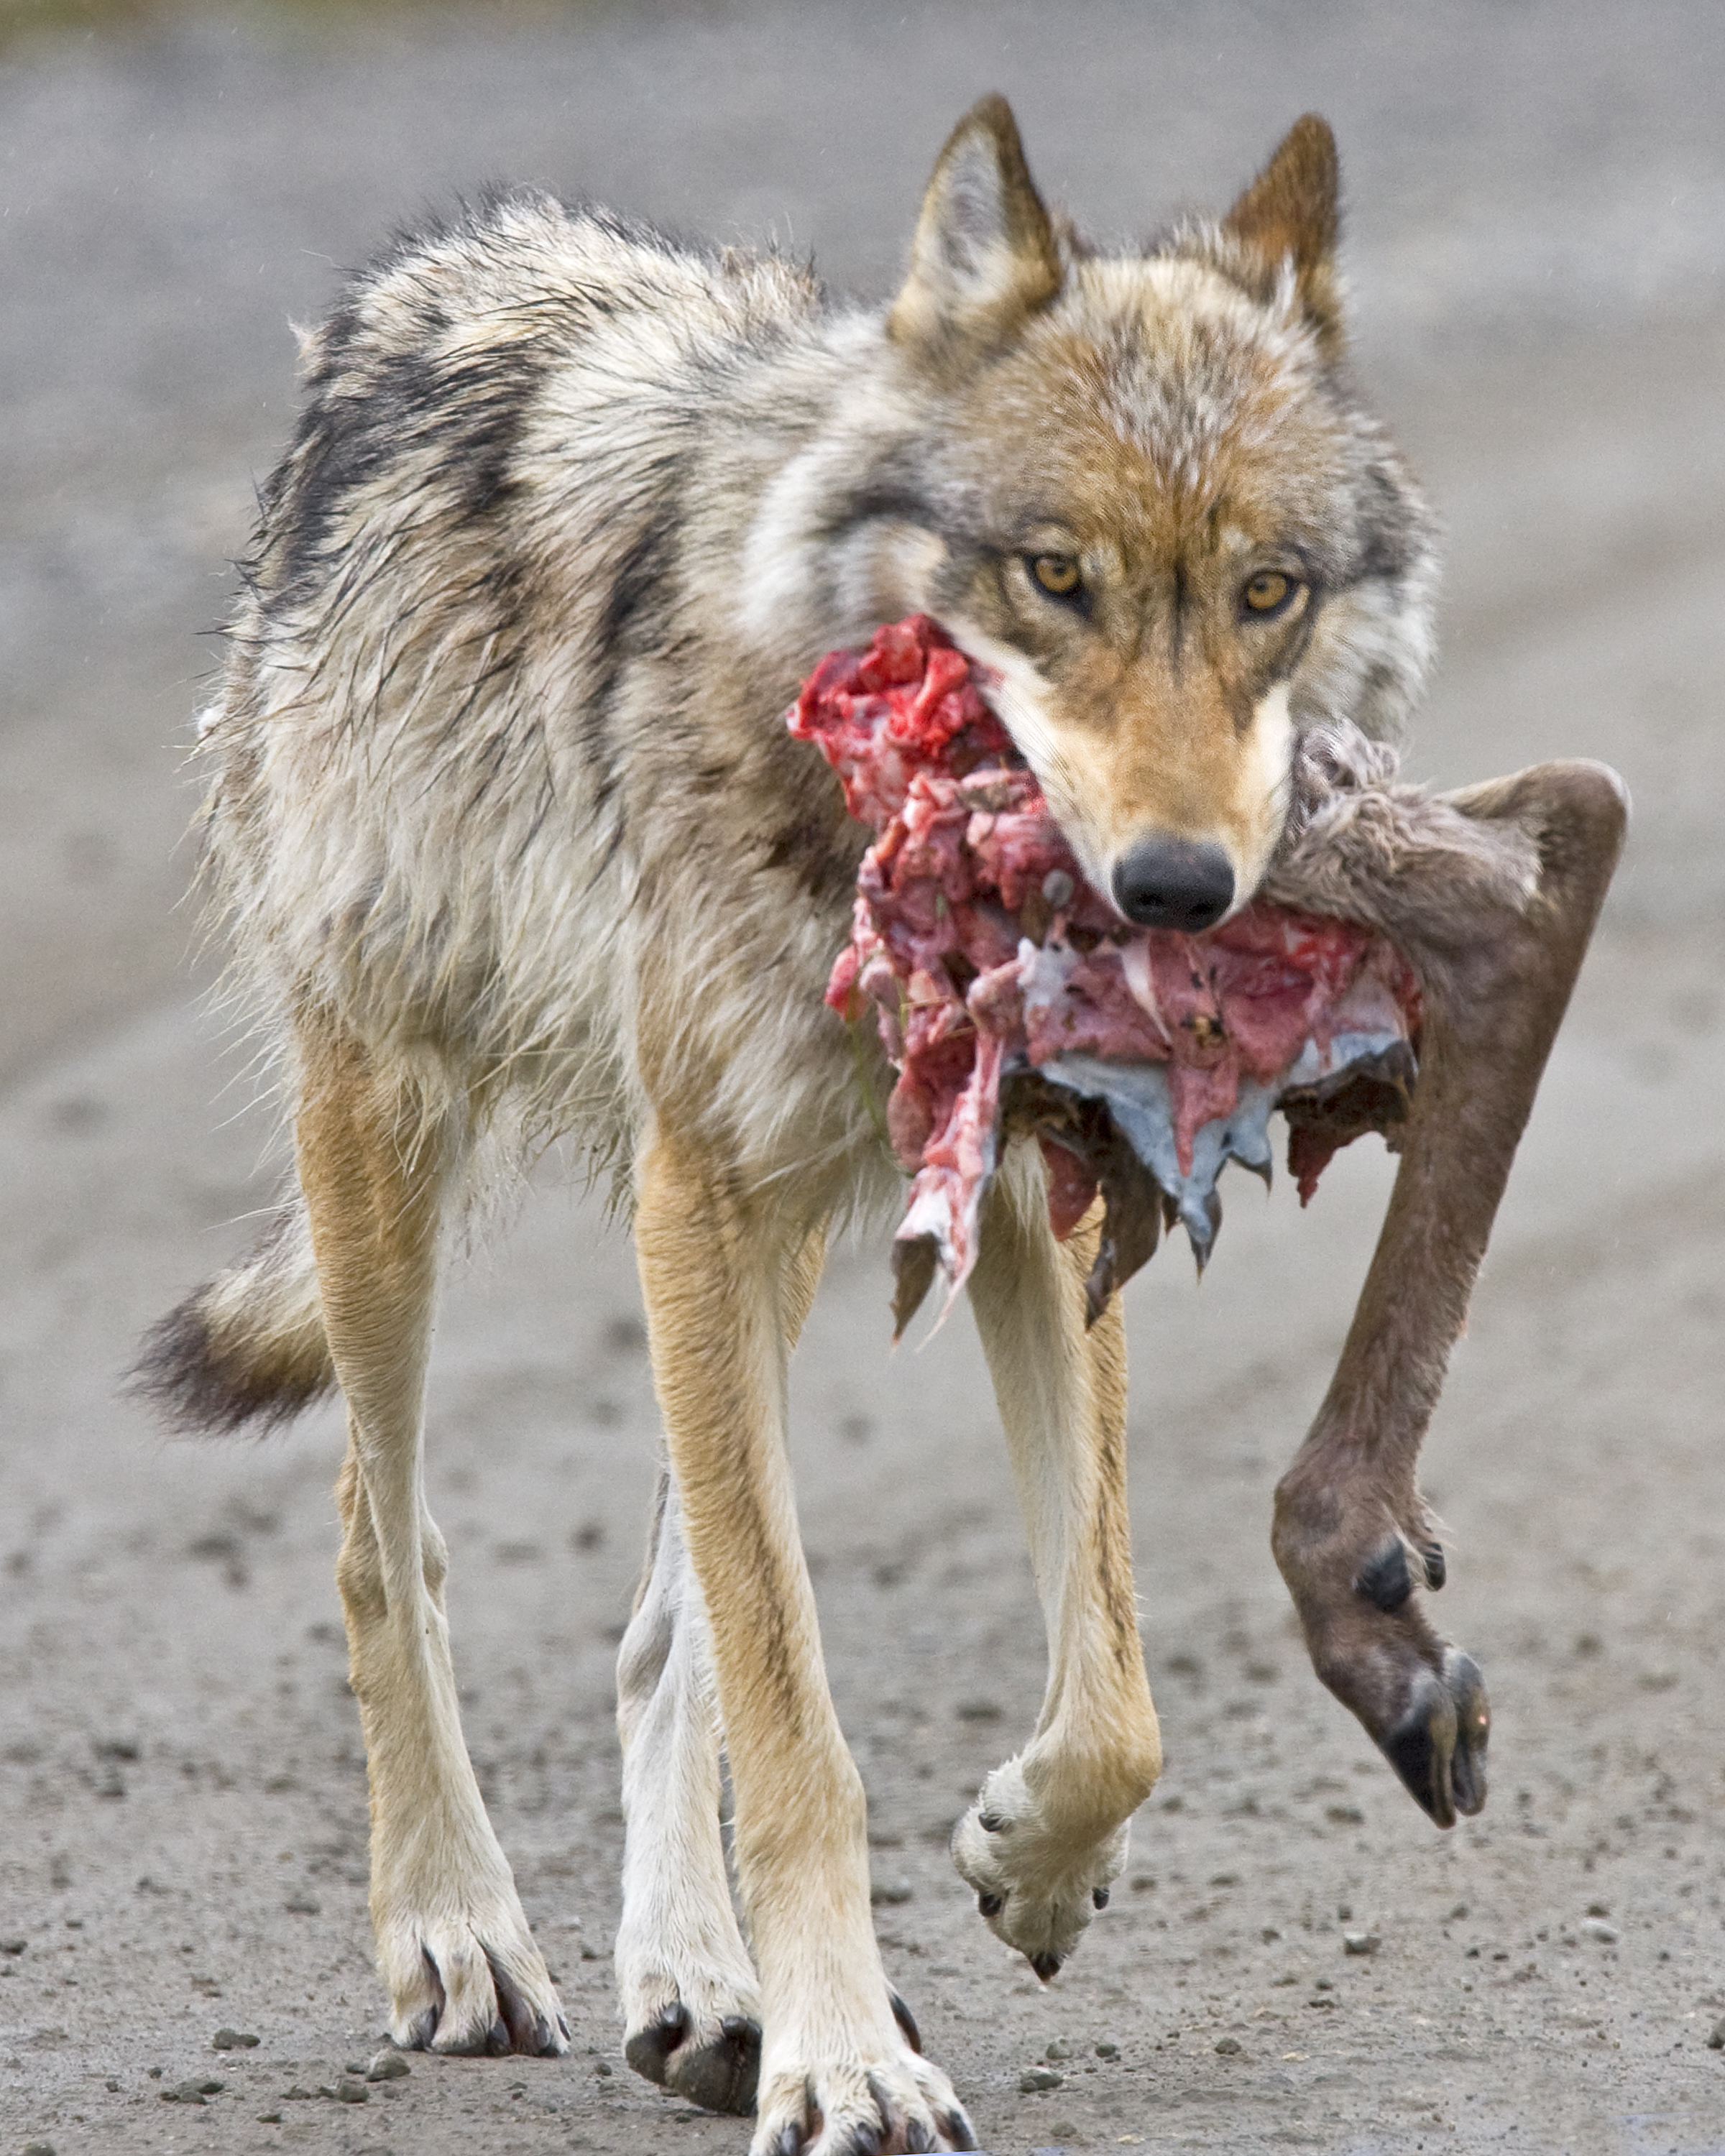 Wolf carrying the hind limb of a deer.